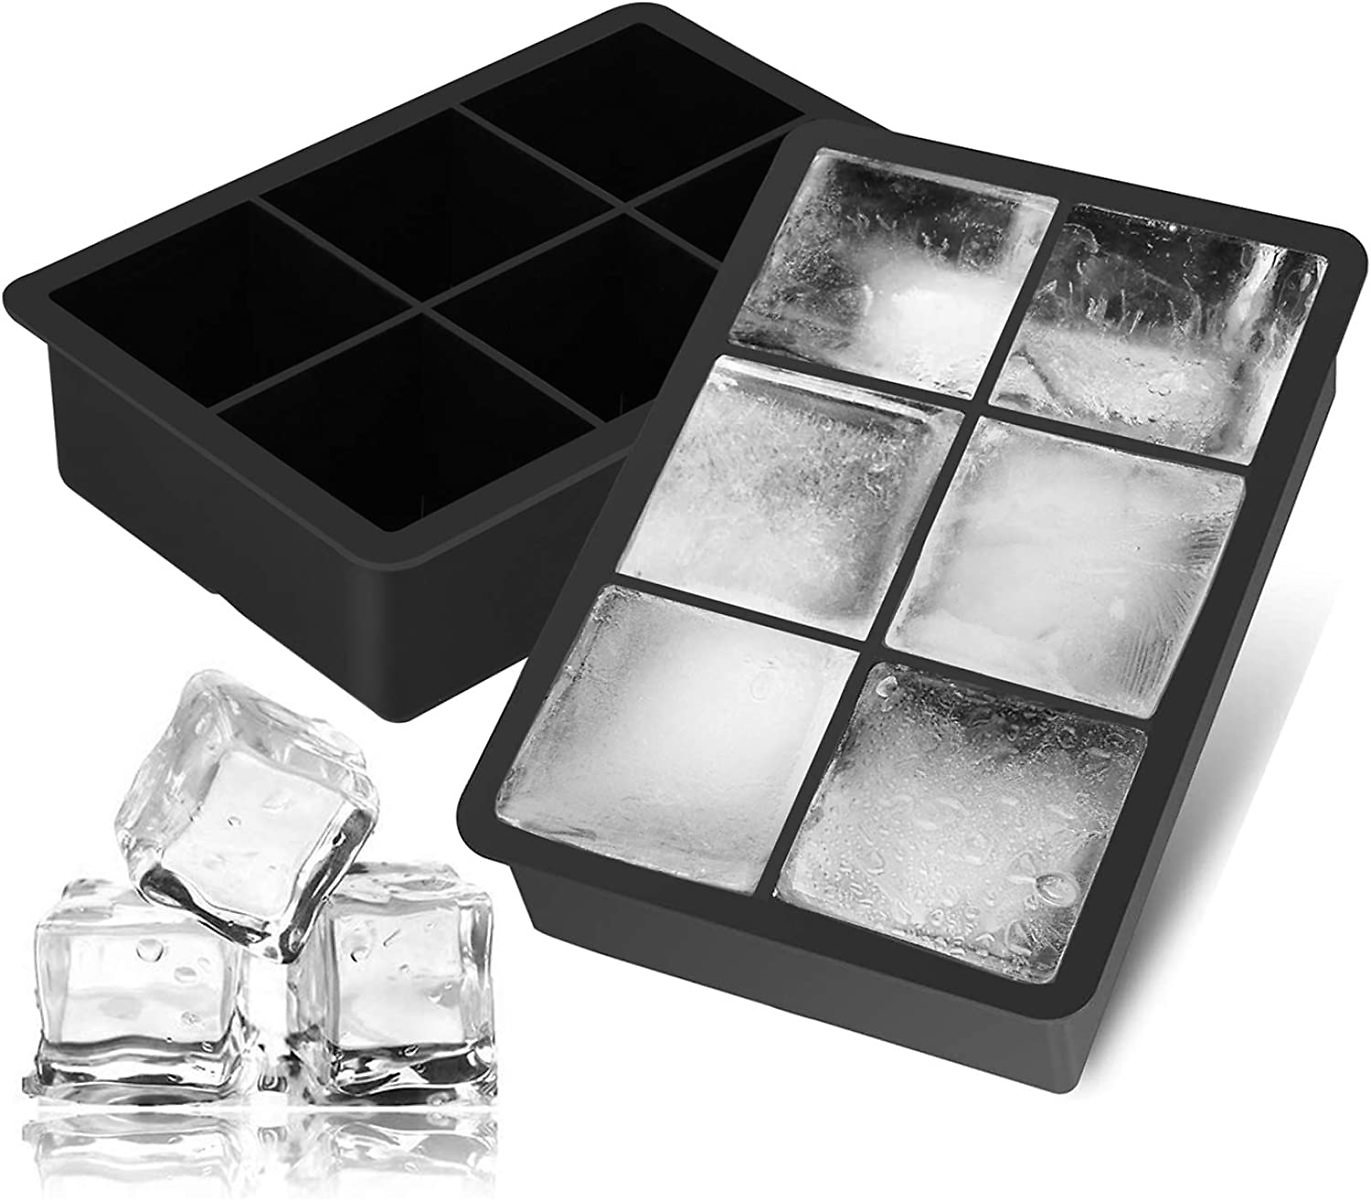 Save 50% On Ice Cube Trays 2 Pack, Morfone Silicone Ice Trays with Lid Easy-Release Flexi with Promo Code 50H12A29 On Amazon.com